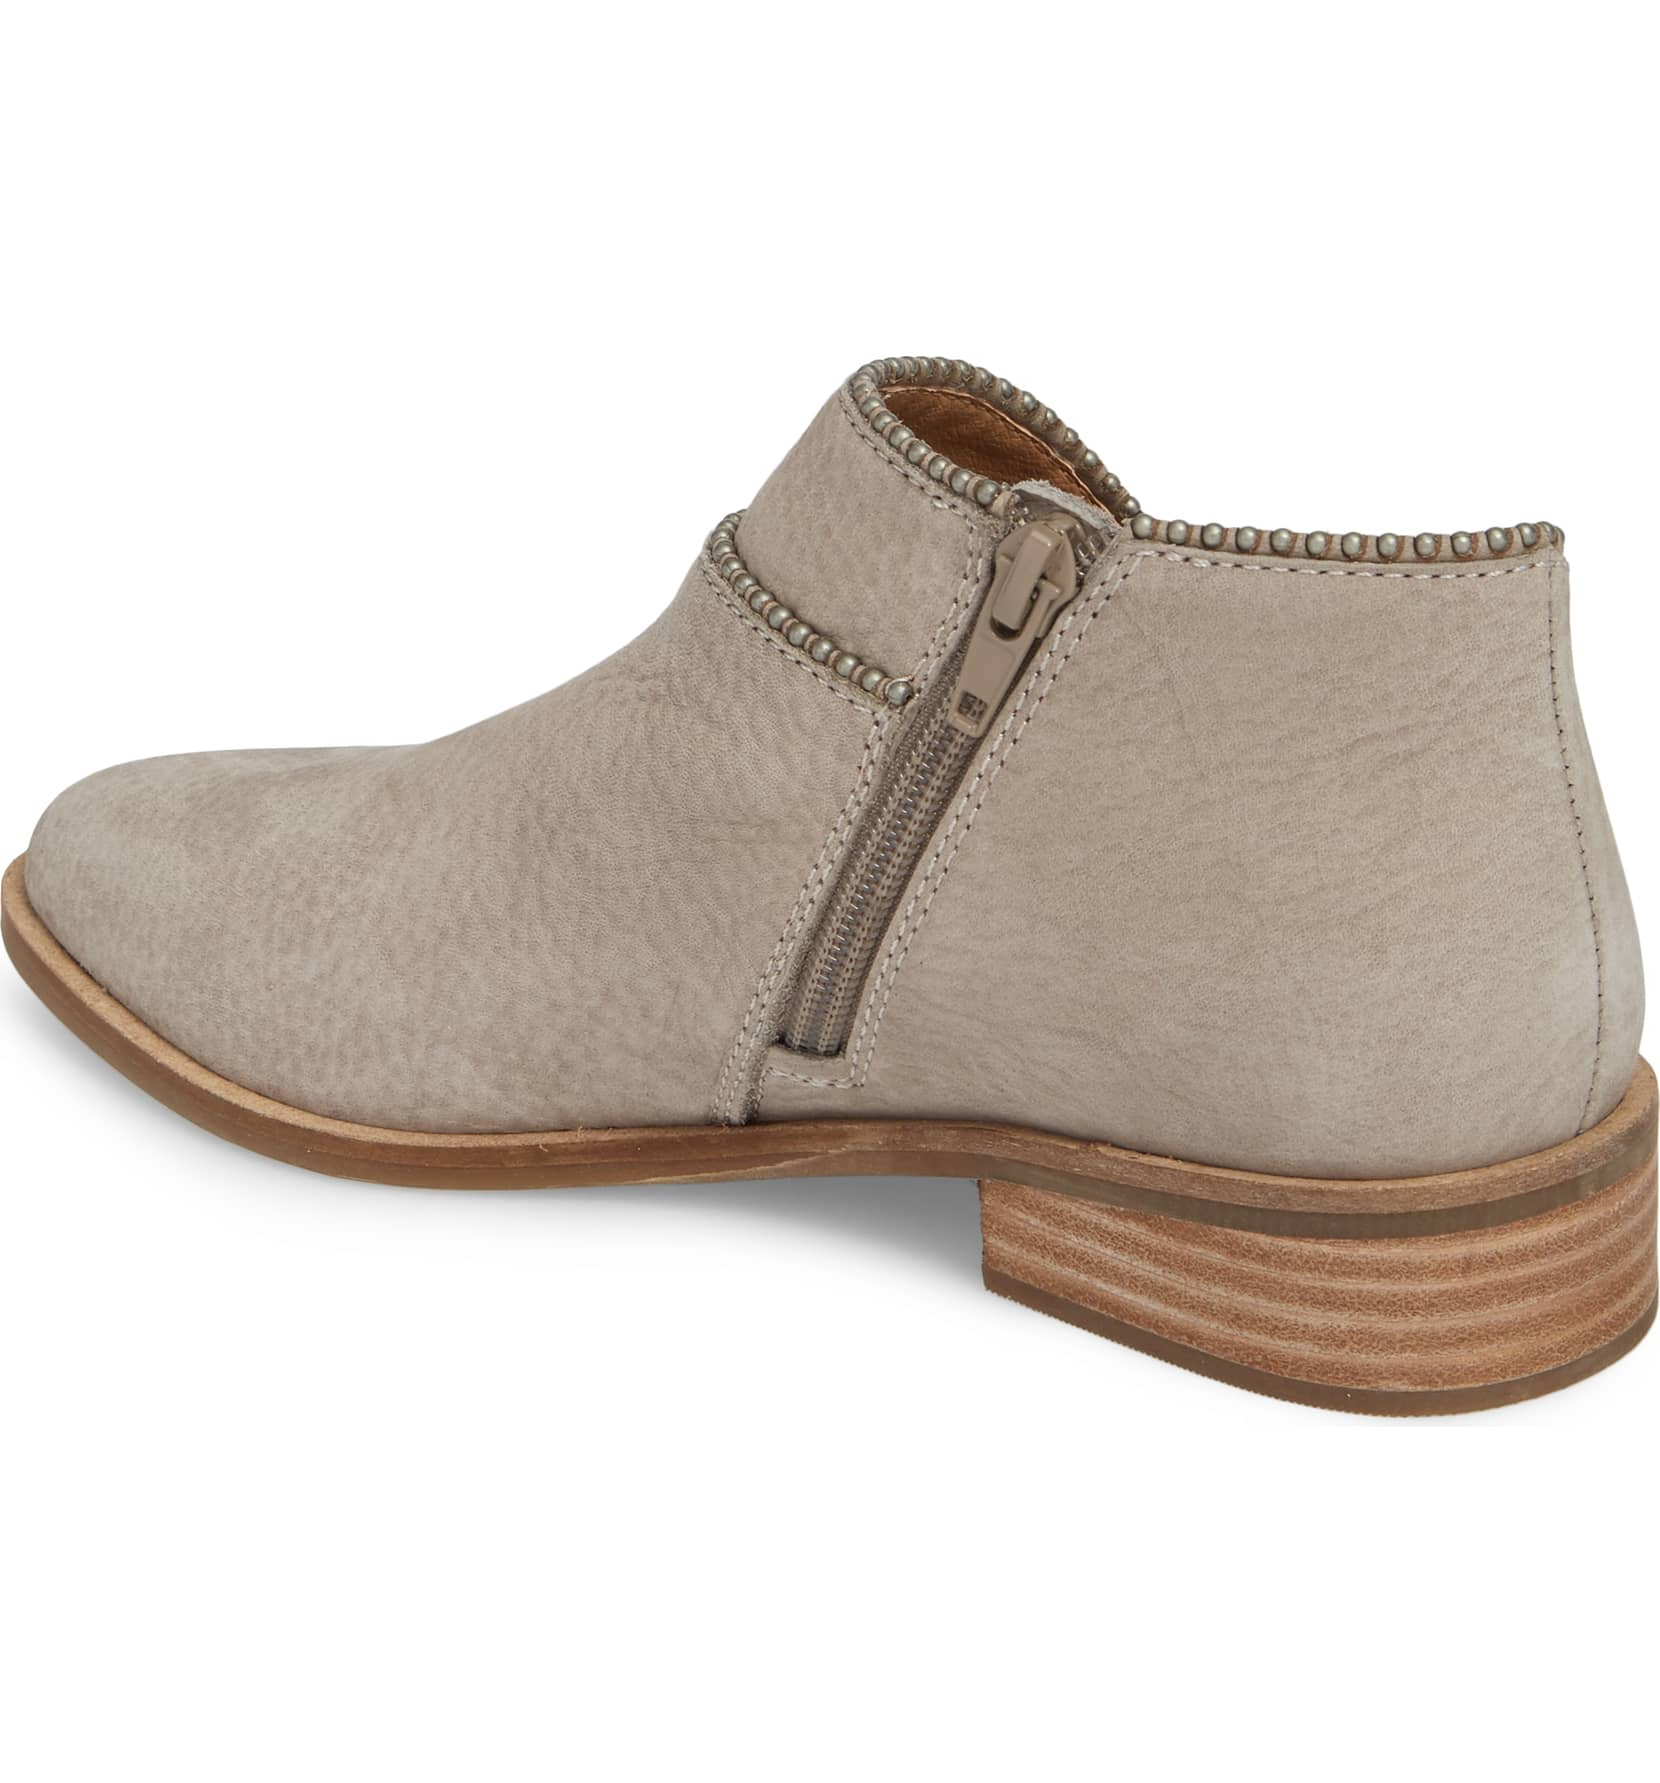 Lucky-Brand-Perrma-Curved-Topline-Pinpoint-Studed-Moto-Edge-Bootie thumbnail 9